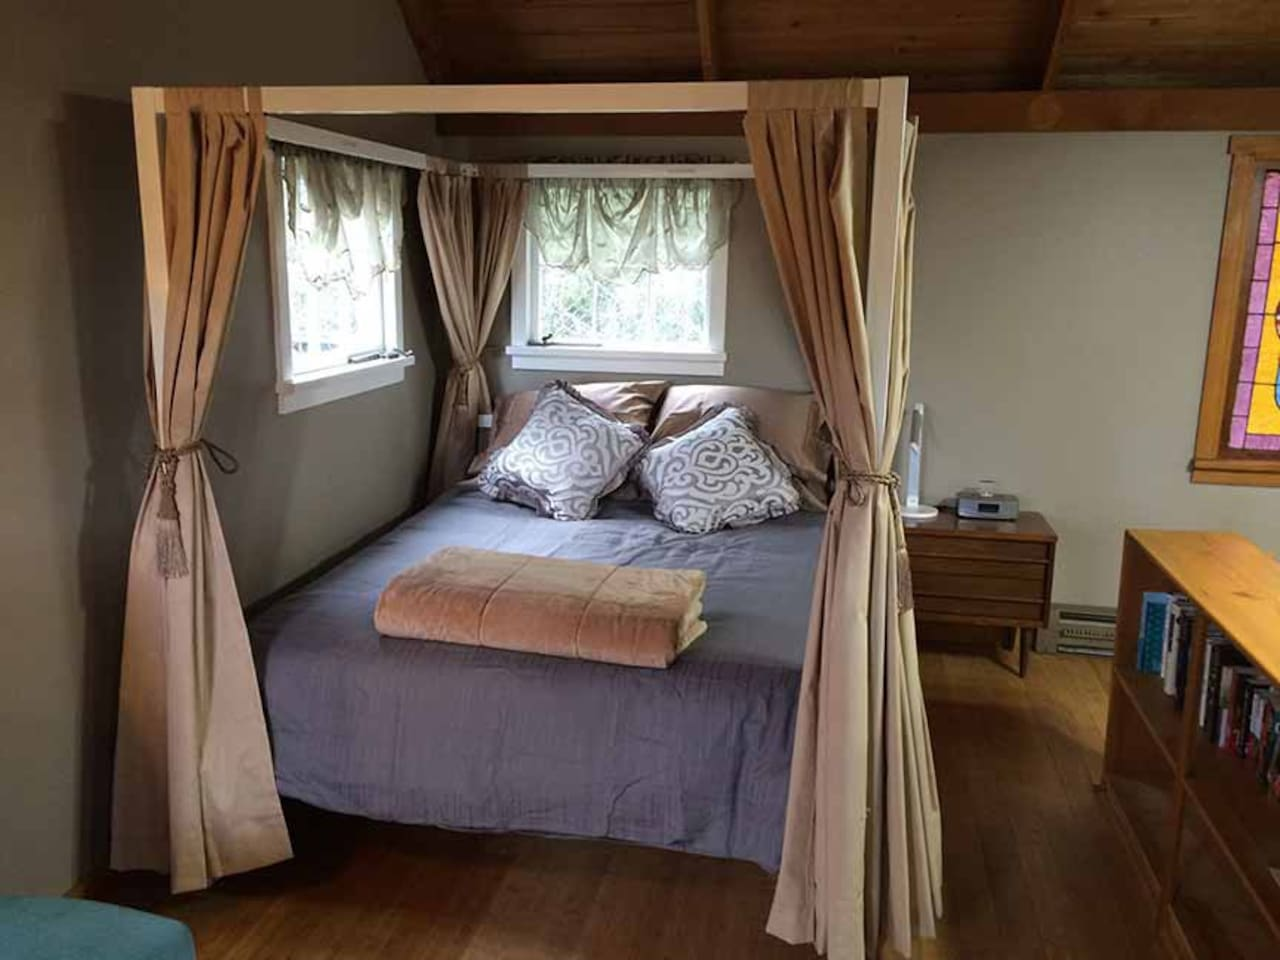 Queen-size canopy bed with hypoallergenic comforter and pillows.  Bed curtains for privacy and light exclusion. Bedside lamp has USB port for charging devices. Radio/alarm clock/dock allows you to listen to your own music. Shelves are stocked with books, games, and puzzles.